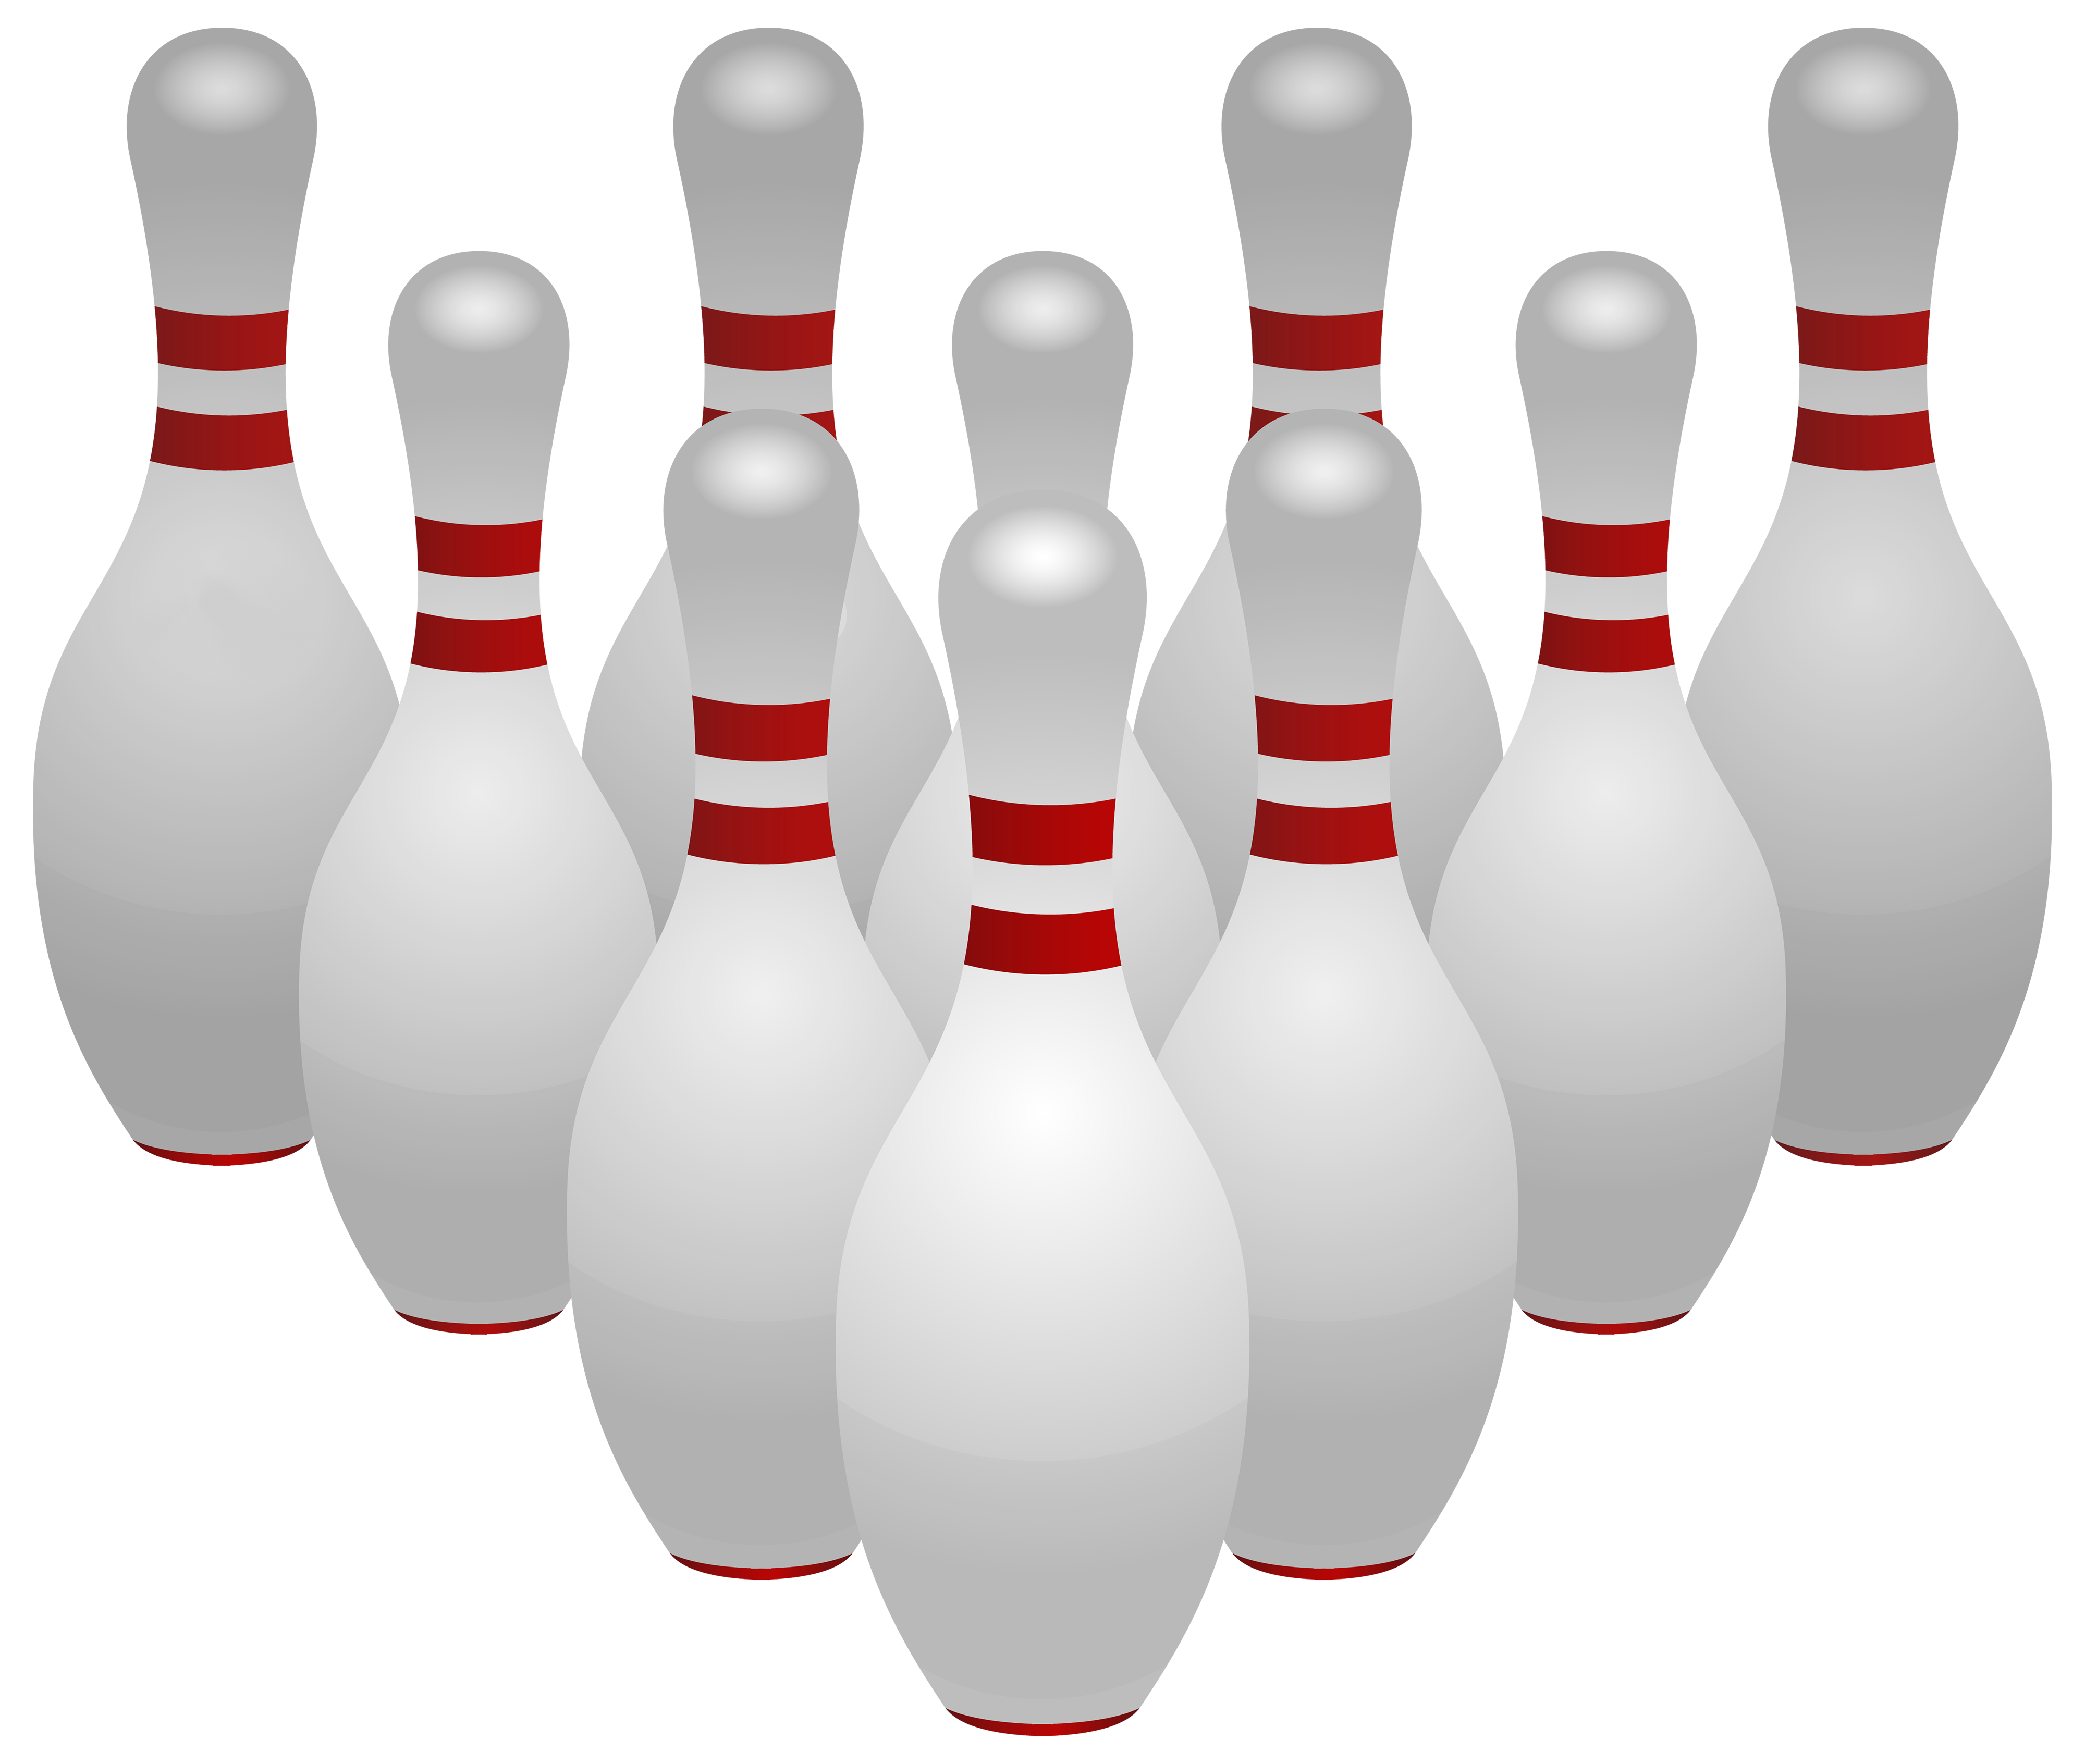 Bowling clipart clipart free download.